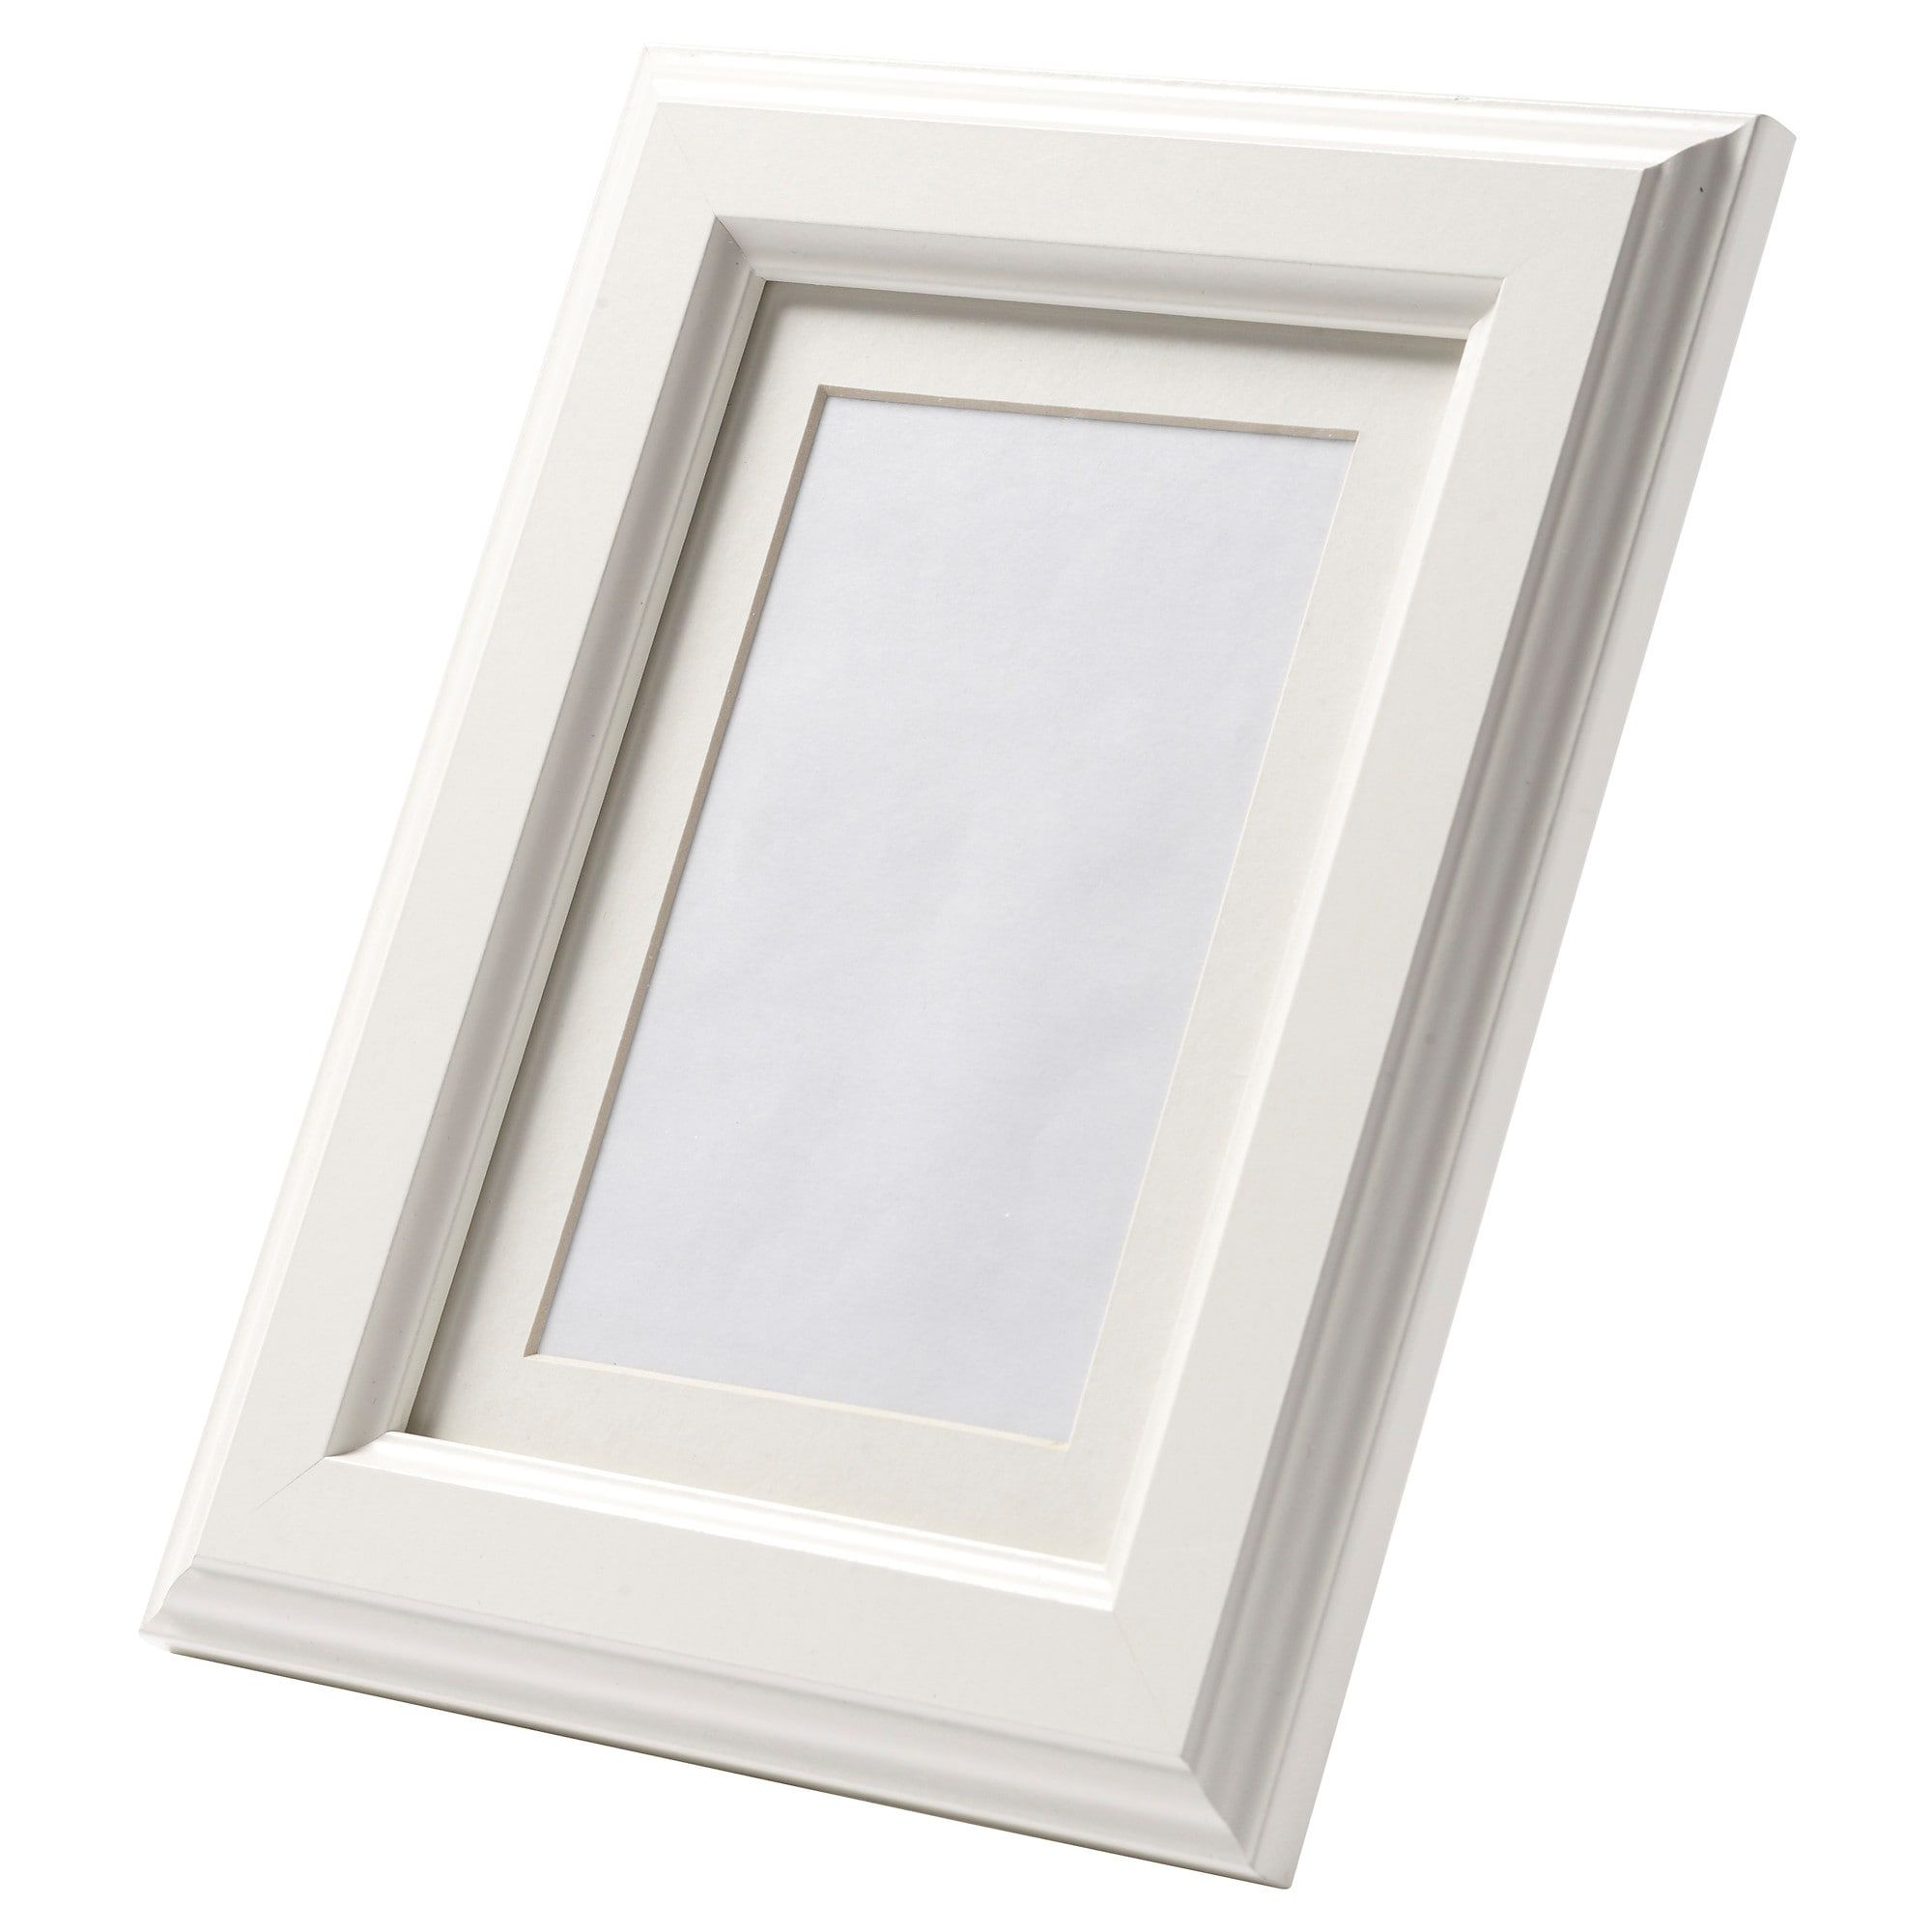 Ikea Us Furniture And Home Furnishings Ikea Frames White Picture Frames Ikea Pictures